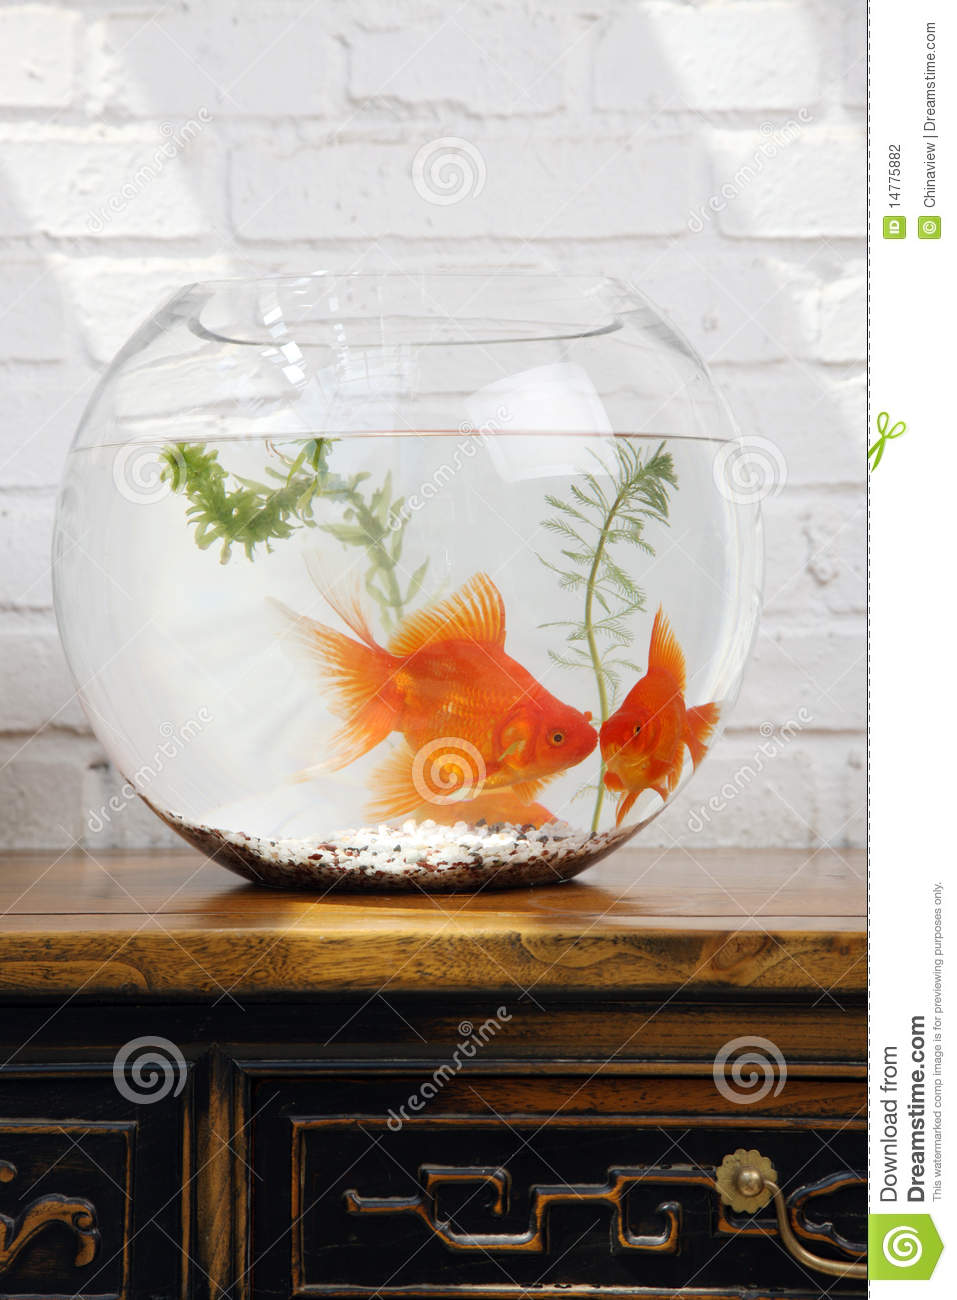 Fish in tank with goldfish - Goldfish In Fish Tank Close Up